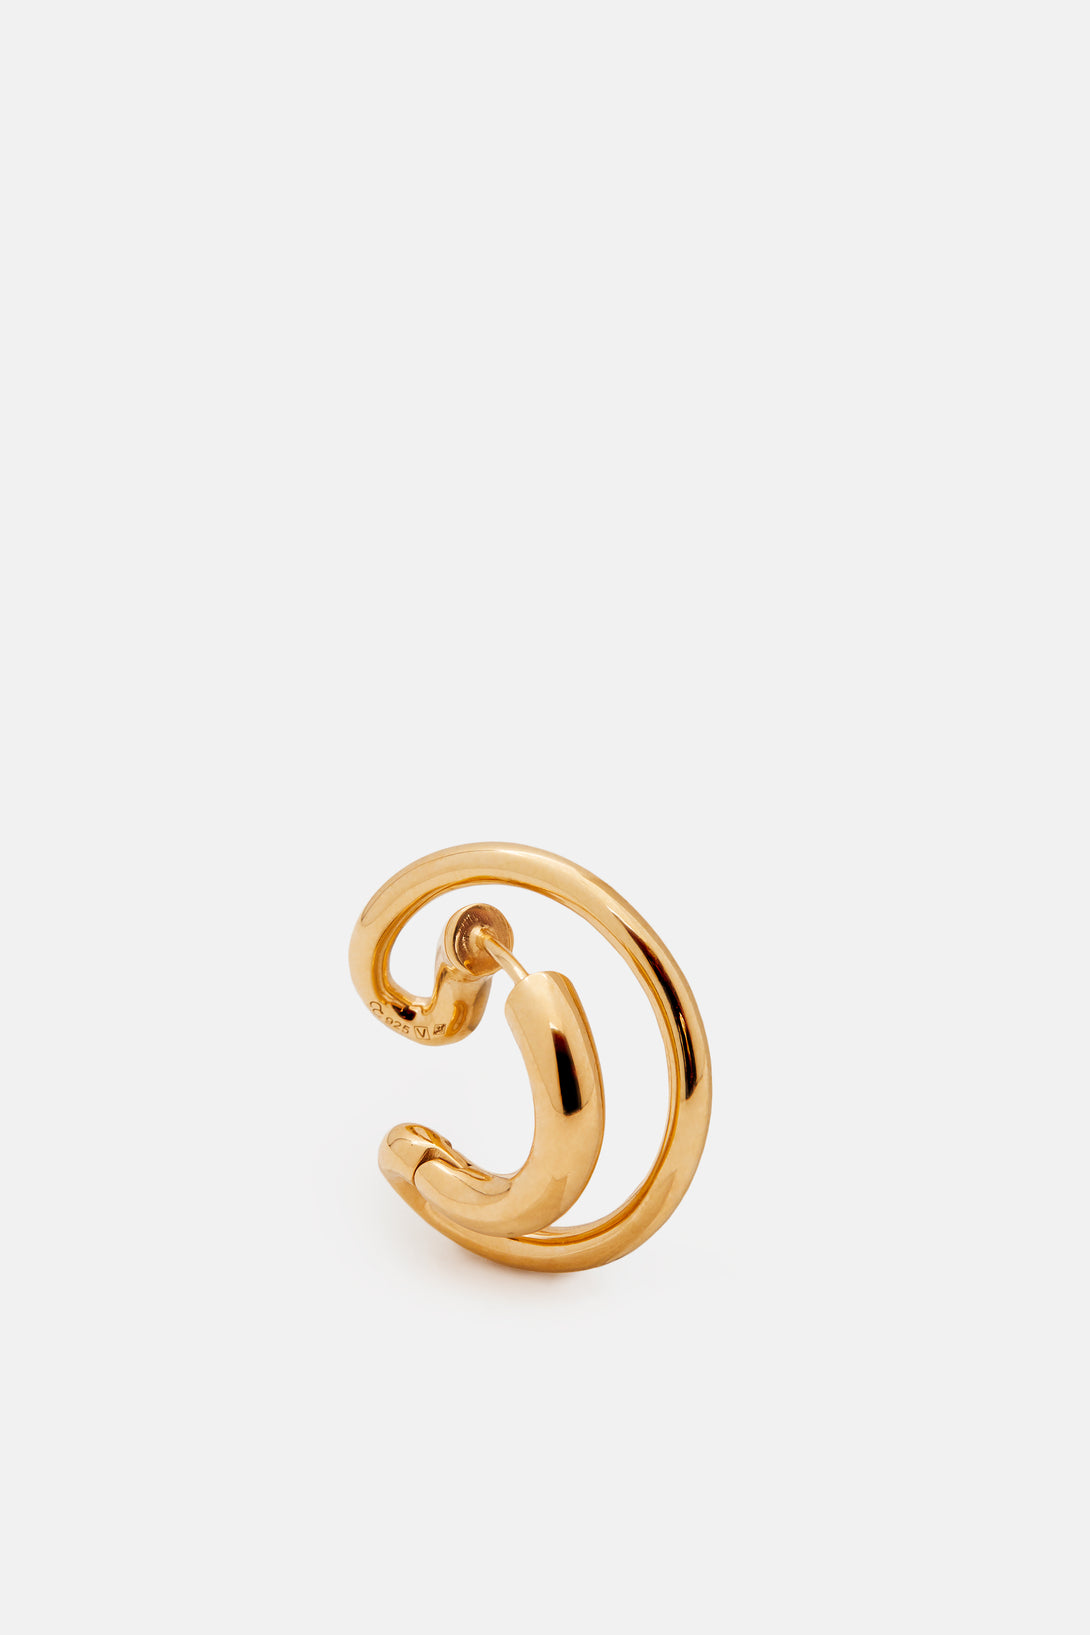 Charlotte Chesnais Ego Small Earring - Yellow Vermeil Gold uAqcBaA